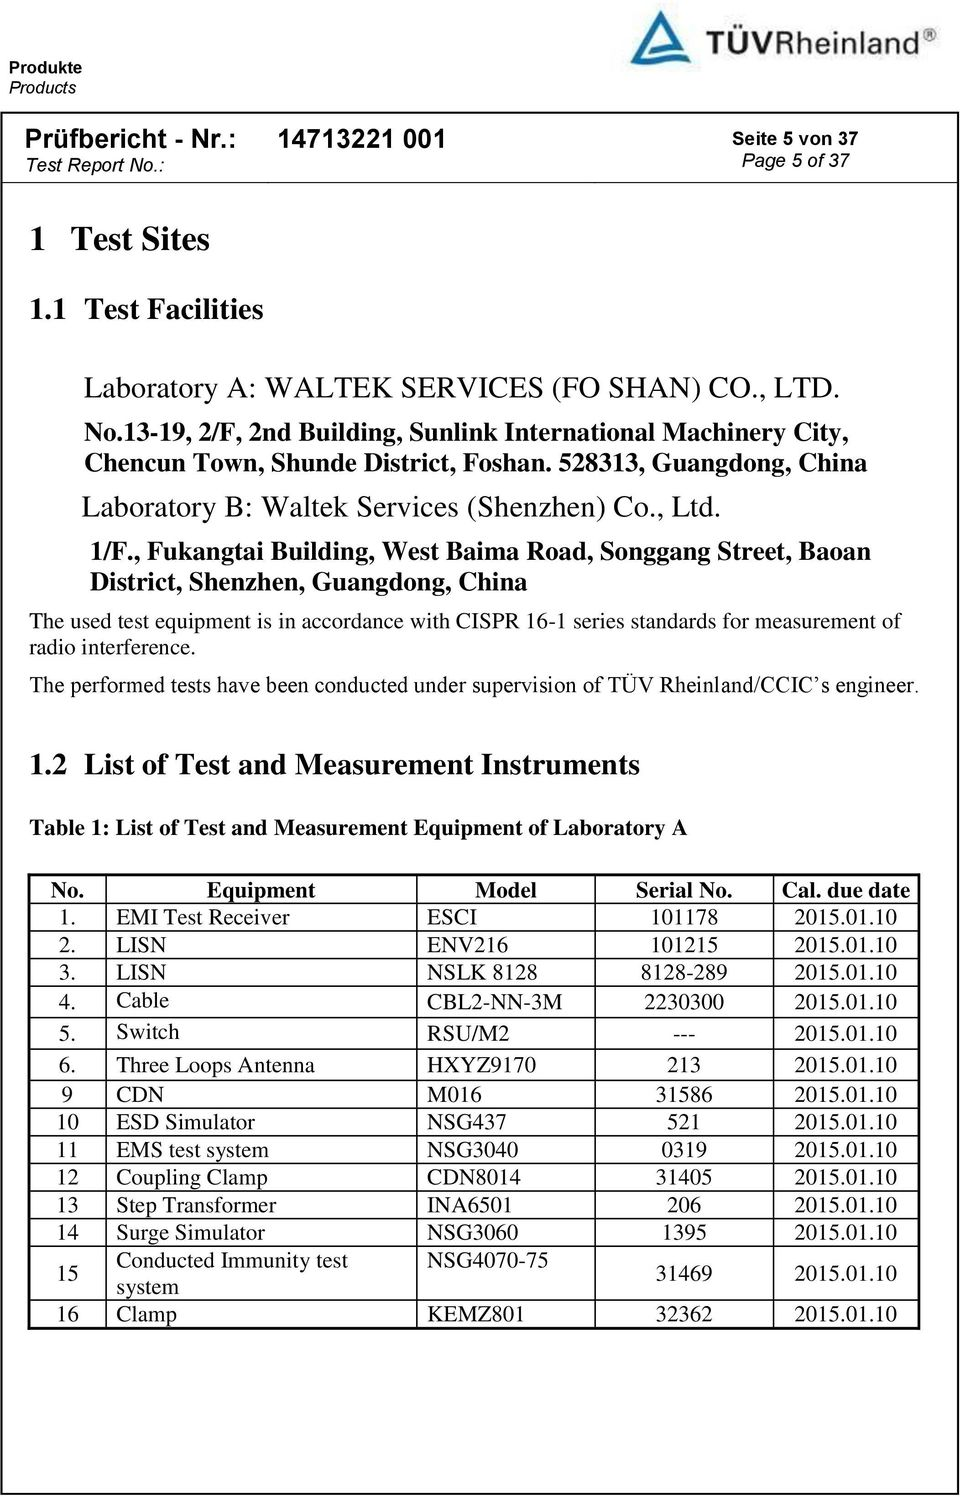 , Fukangtai Building, West Baima Road, Songgang Street, Baoan District, Shenzhen, Guangdong, China The used test equipment is in accordance with CISPR 16-1 series standards for measurement of radio